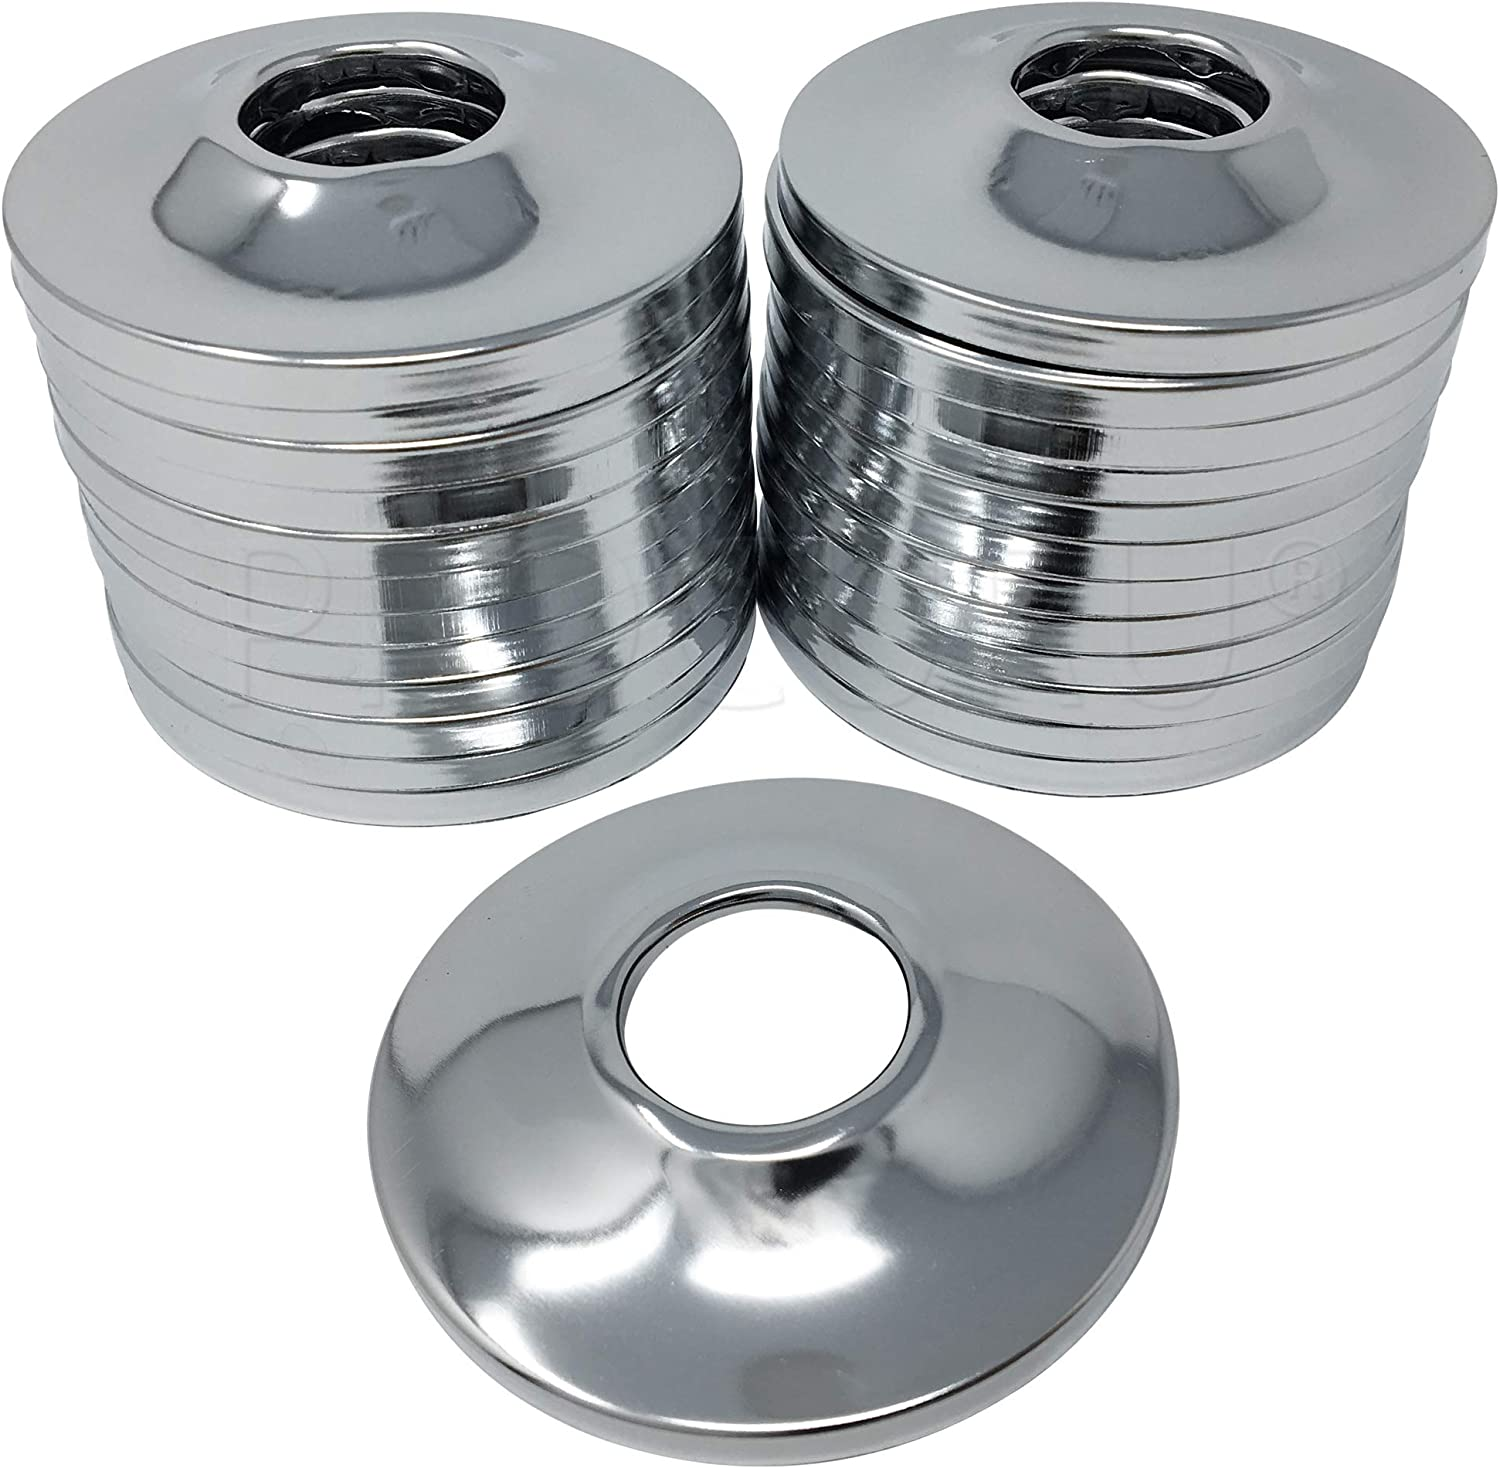 5 Split Chrome Escutcheon Trim Rings for 1-1//2 Outside Diameter Pipe /& Tube Hole